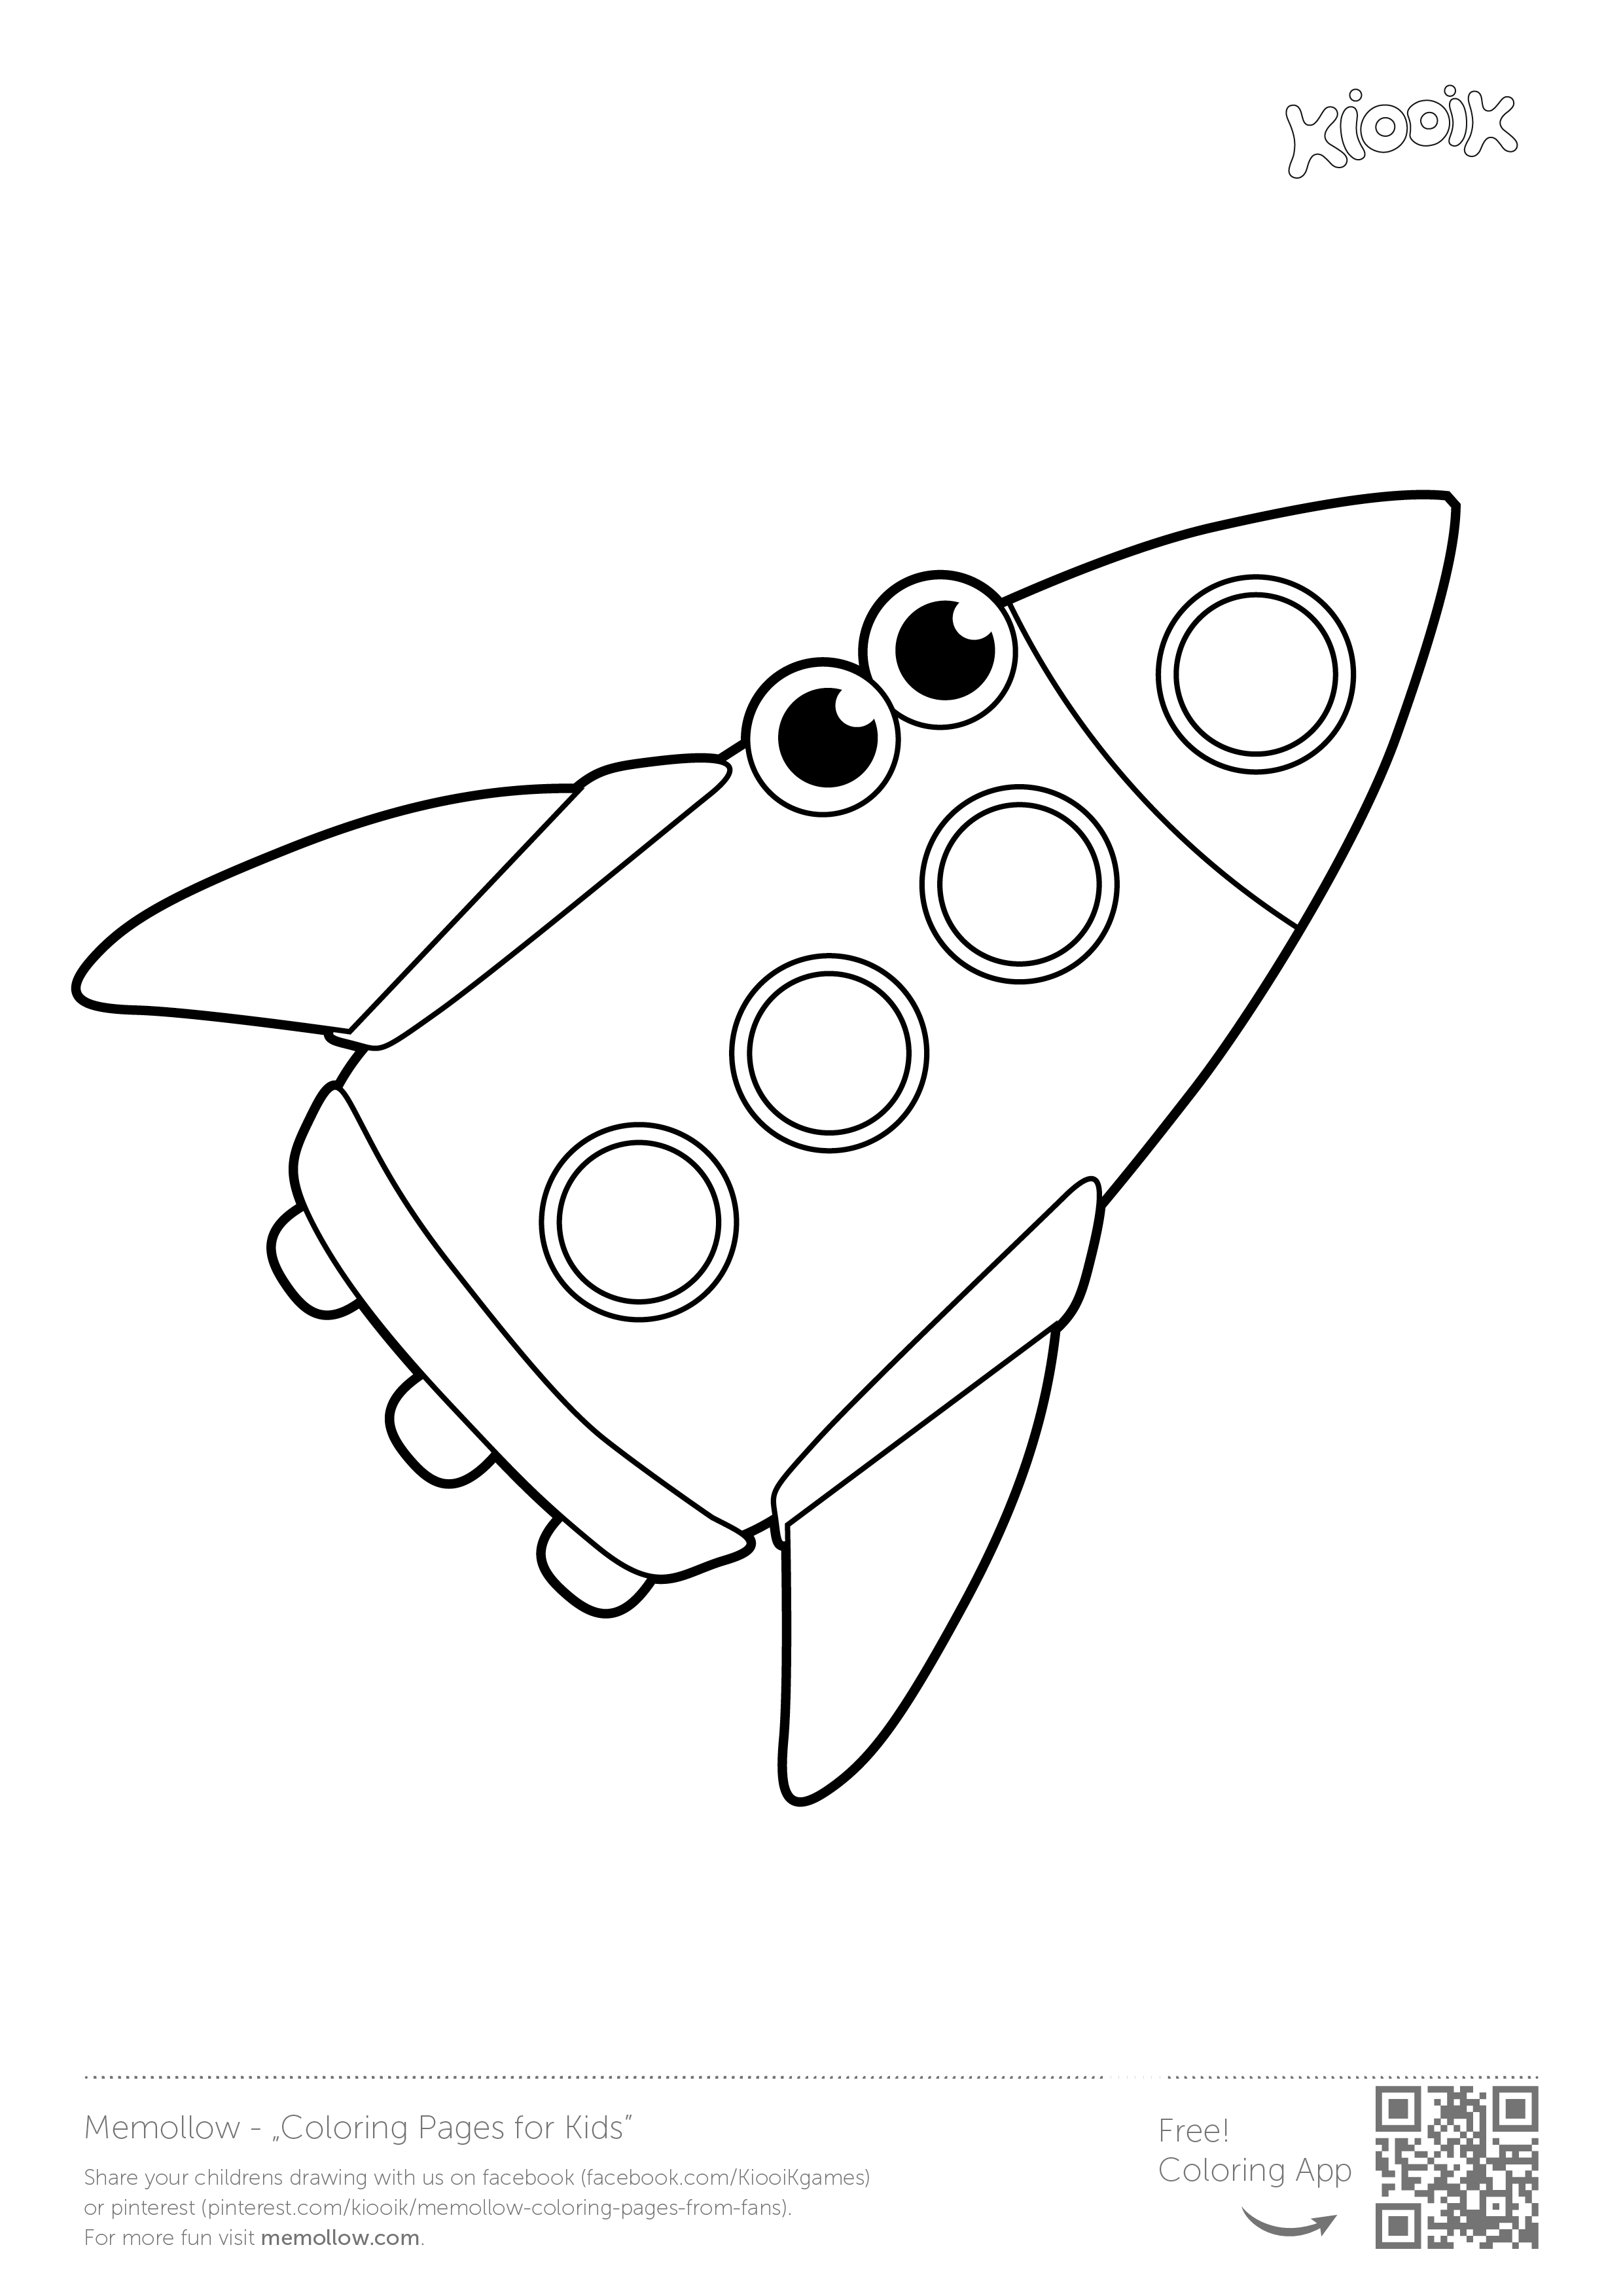 space travel history coloring pages coloring home